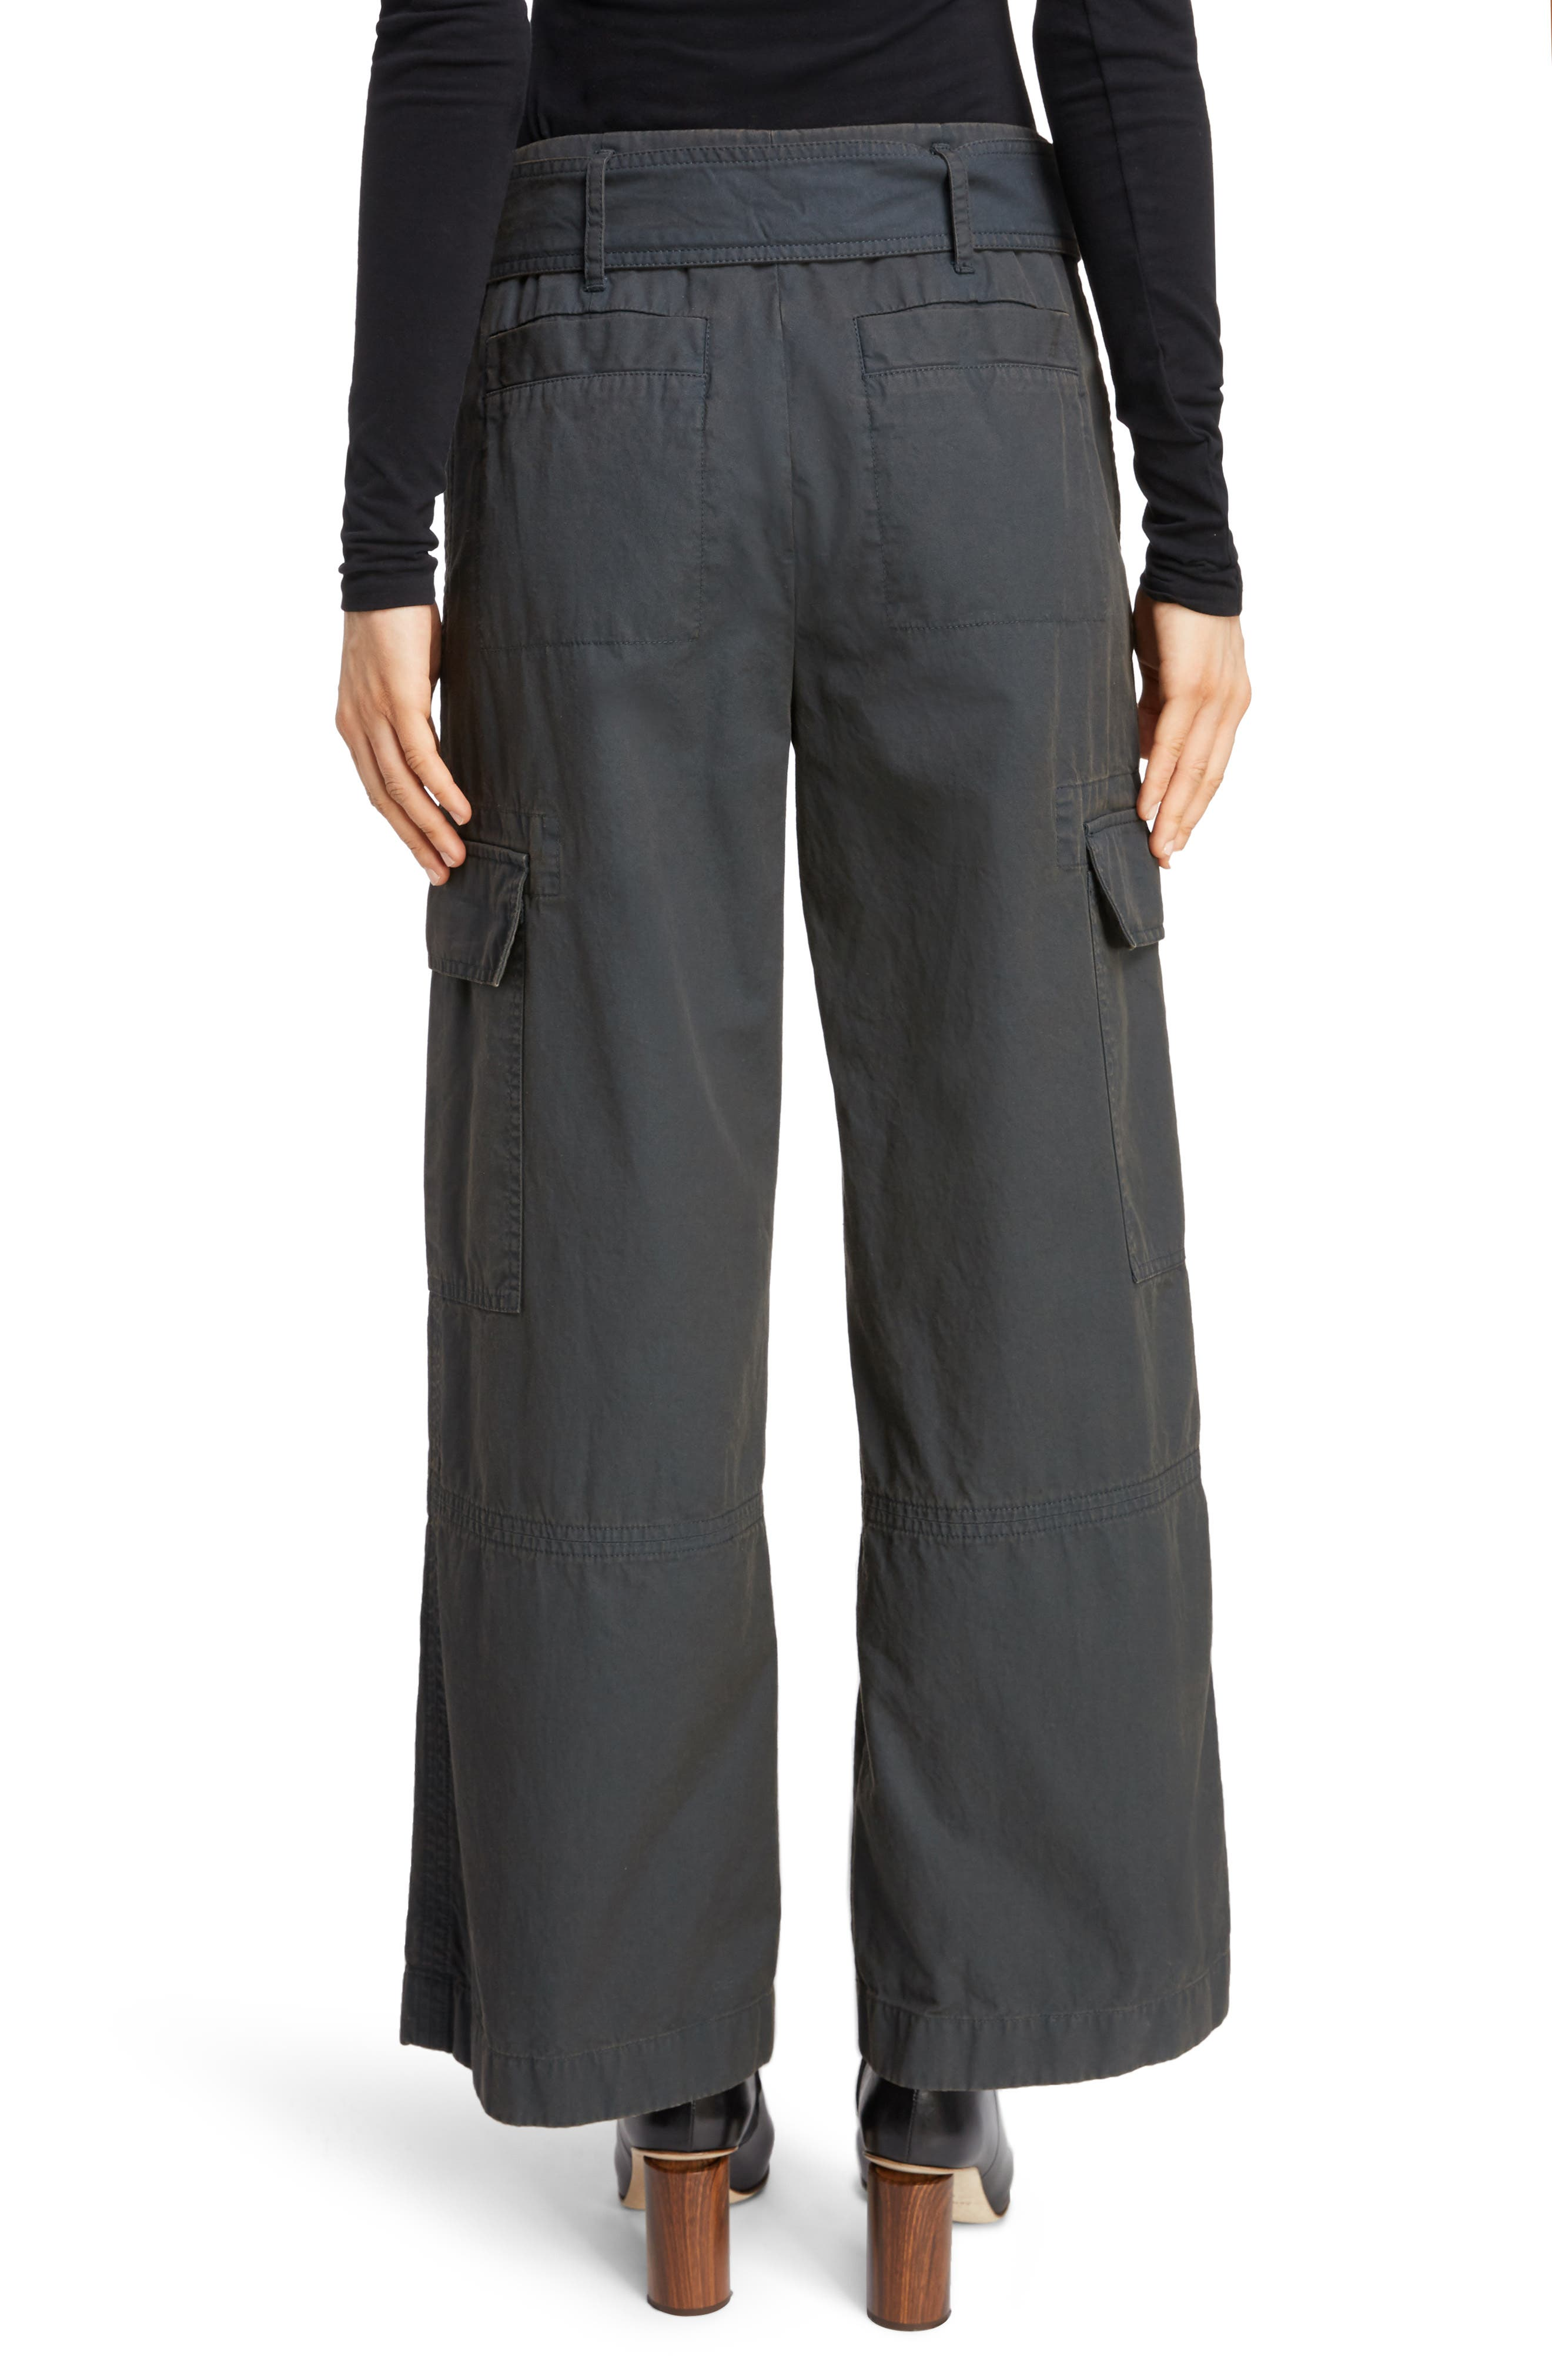 ACNE STUDIOS,                             Patrice Cotton Chino Trousers,                             Alternate thumbnail 2, color,                             ANTHRACITE GREY